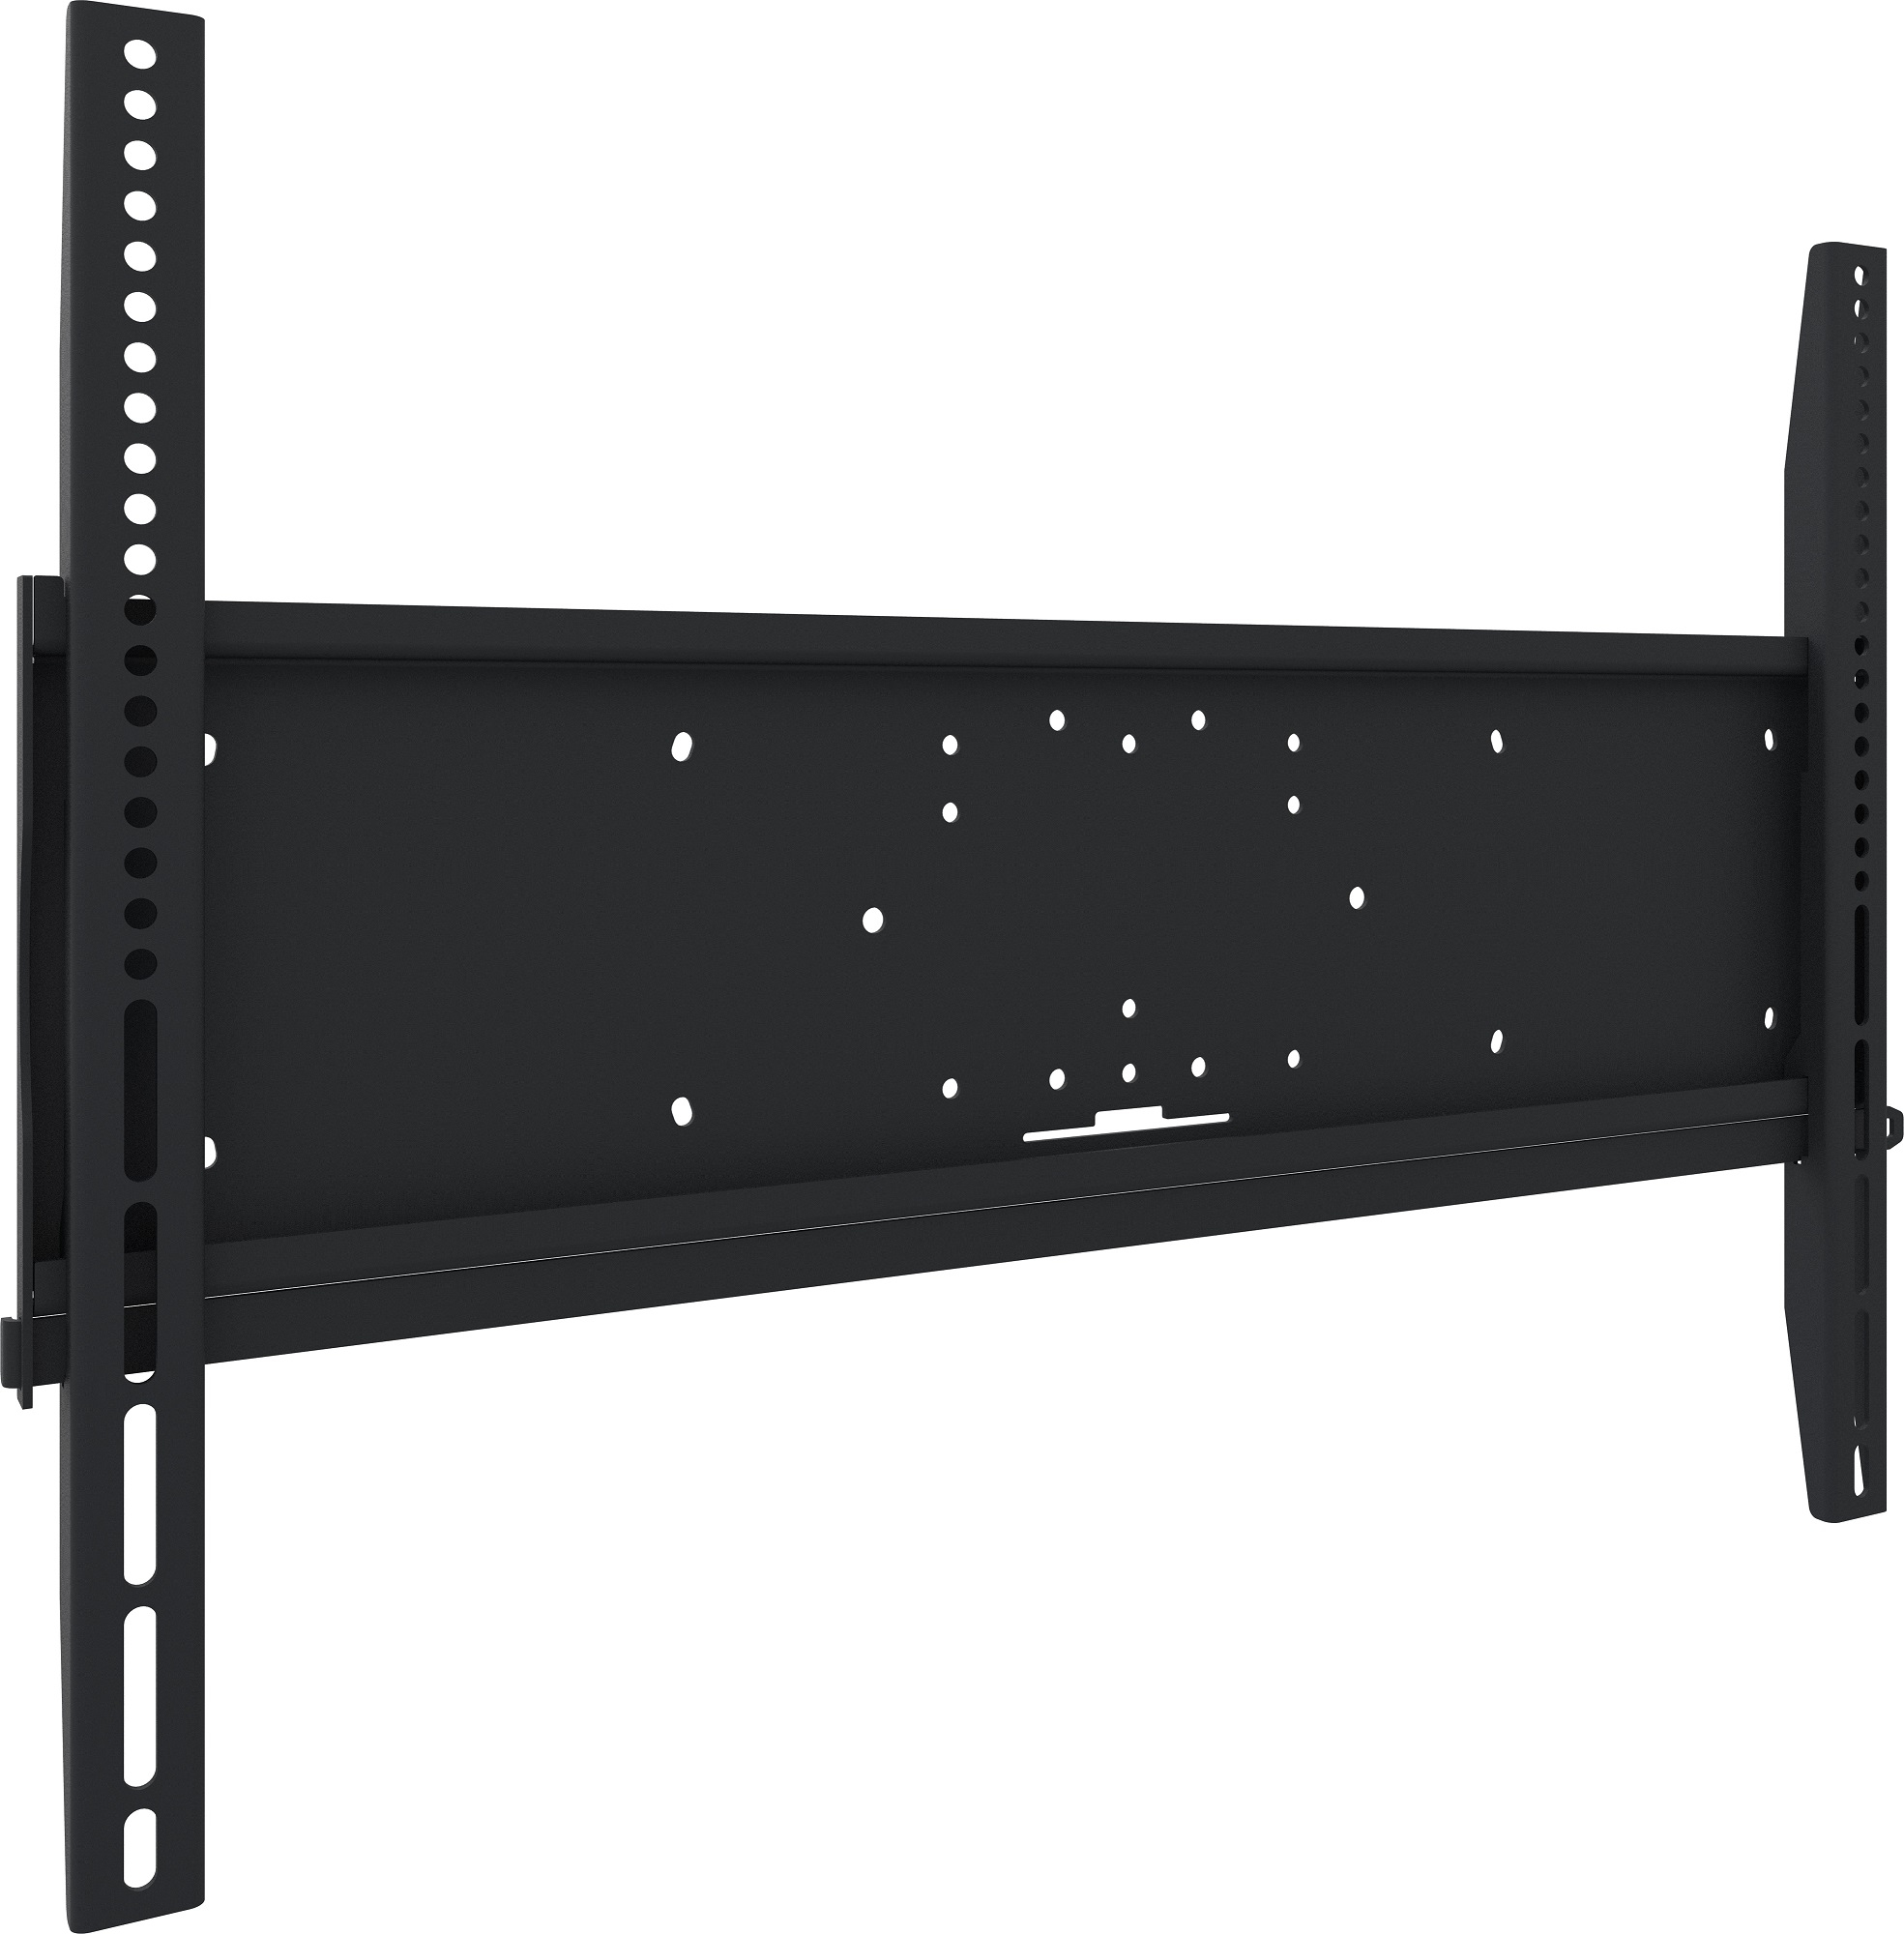 IIYAMA MD 052B2010 BLACK FLAT PANEL WALL MOUNT